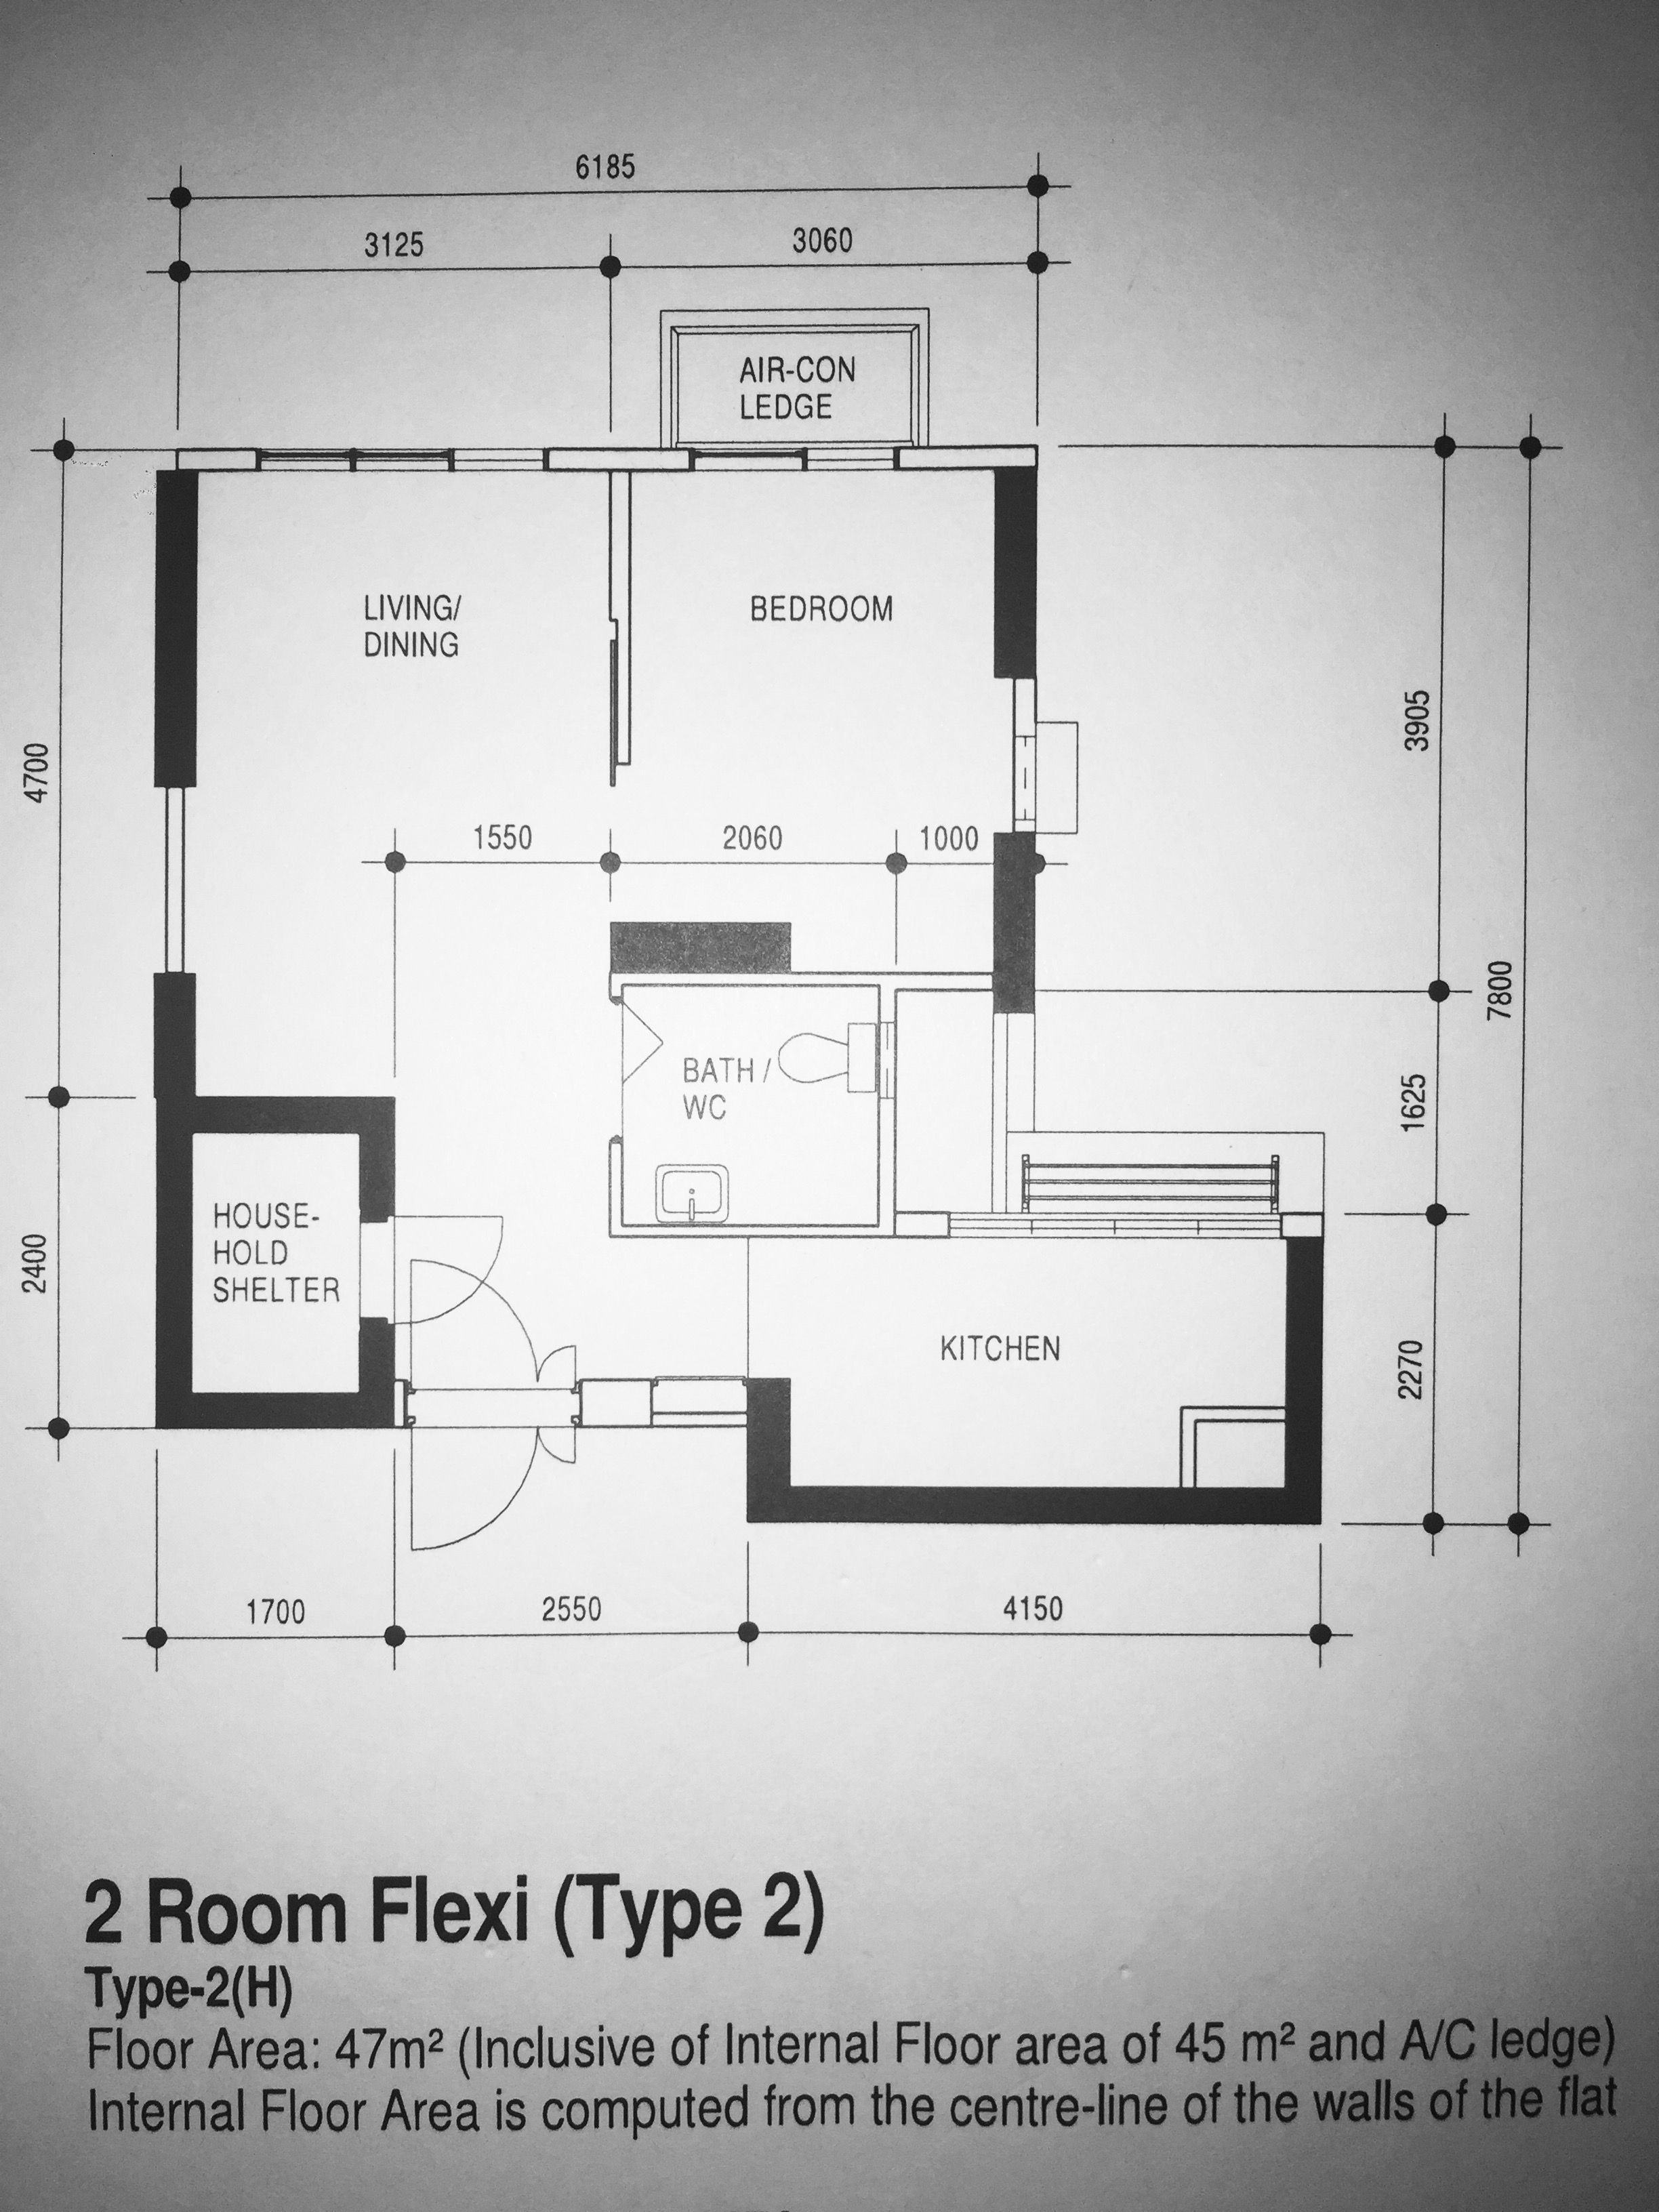 Coastal Design 2 Room Bto Flat: Pin By Redzuan Idris On 2 Room Flexi Bto Flat